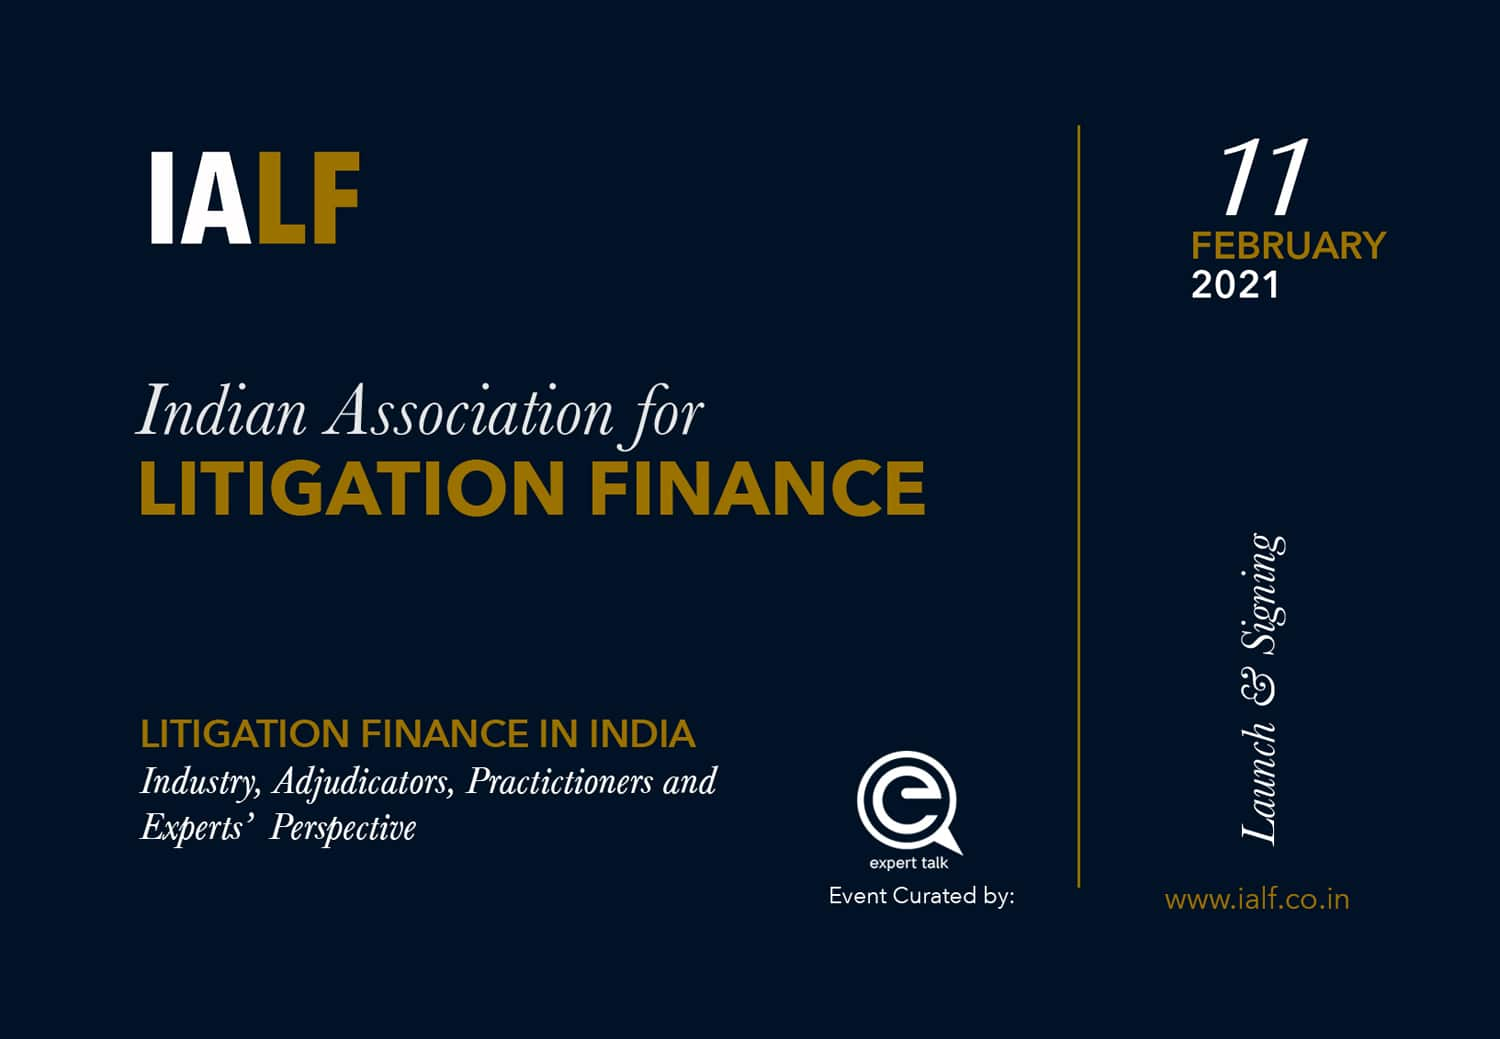 Litigation Finance in India – Panel Discussion at the IALF Launch & Signing Ceremony